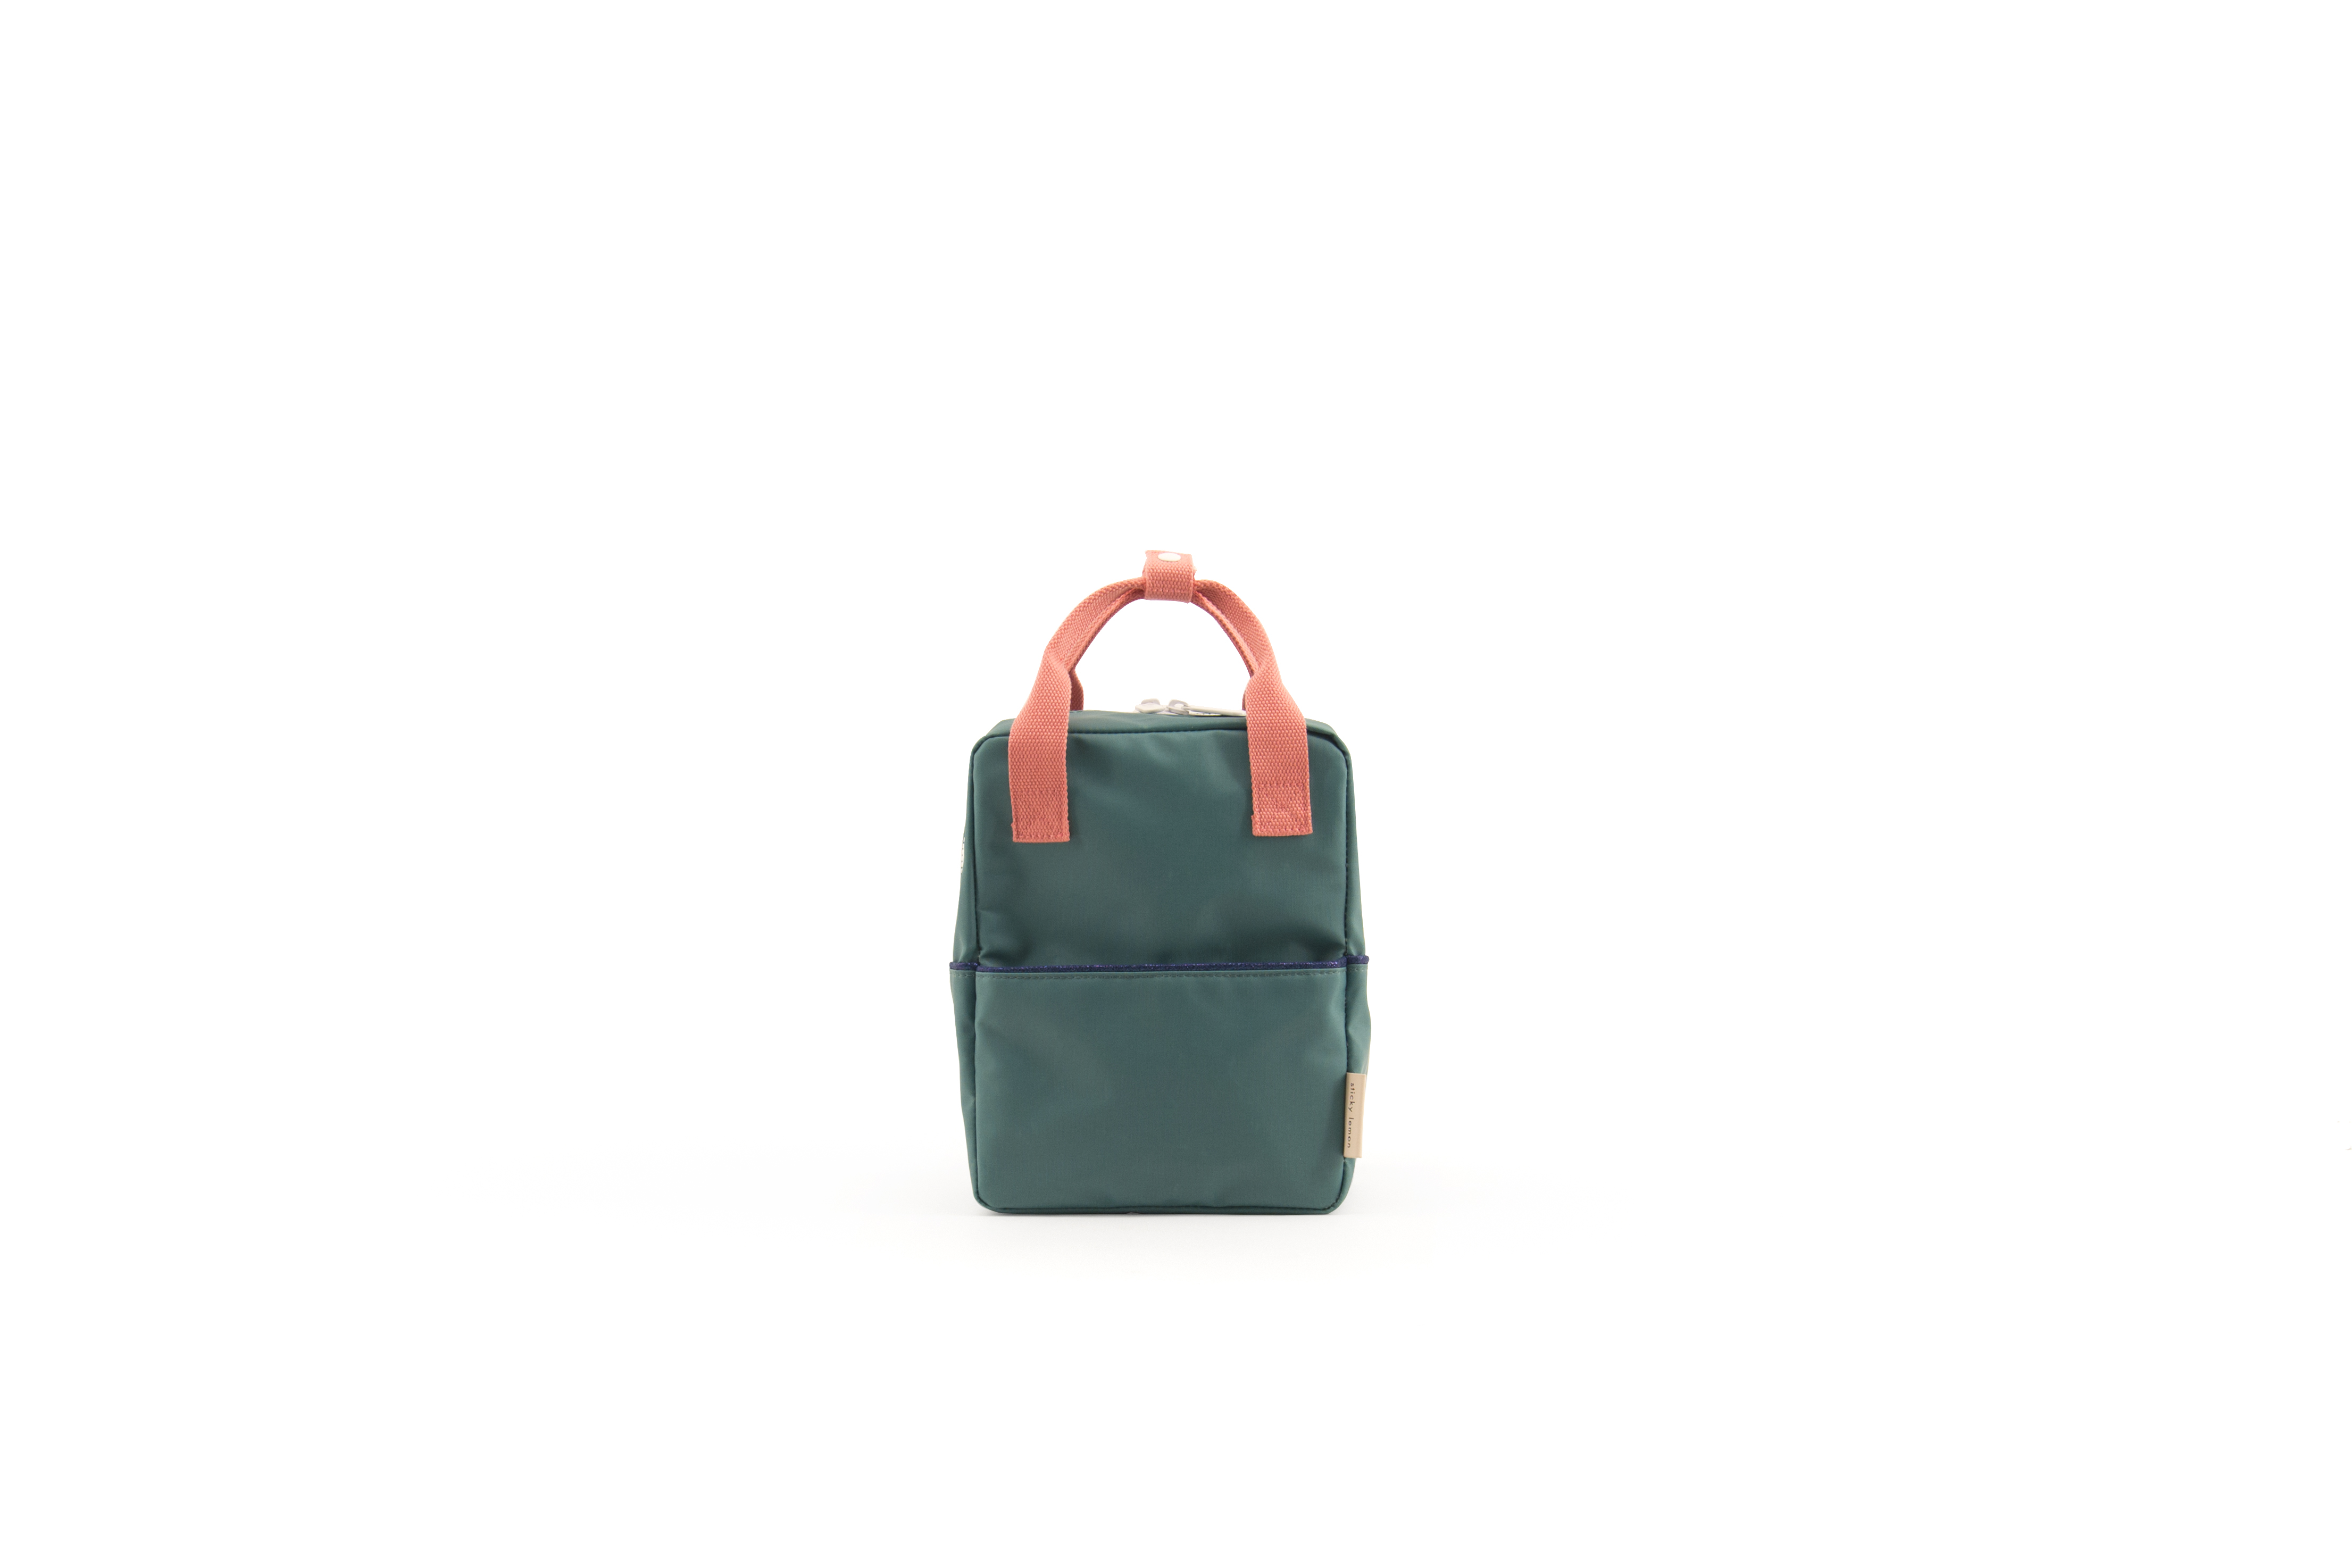 Sticky Lemon Green - Backpack Small - Grass Green - Accessories